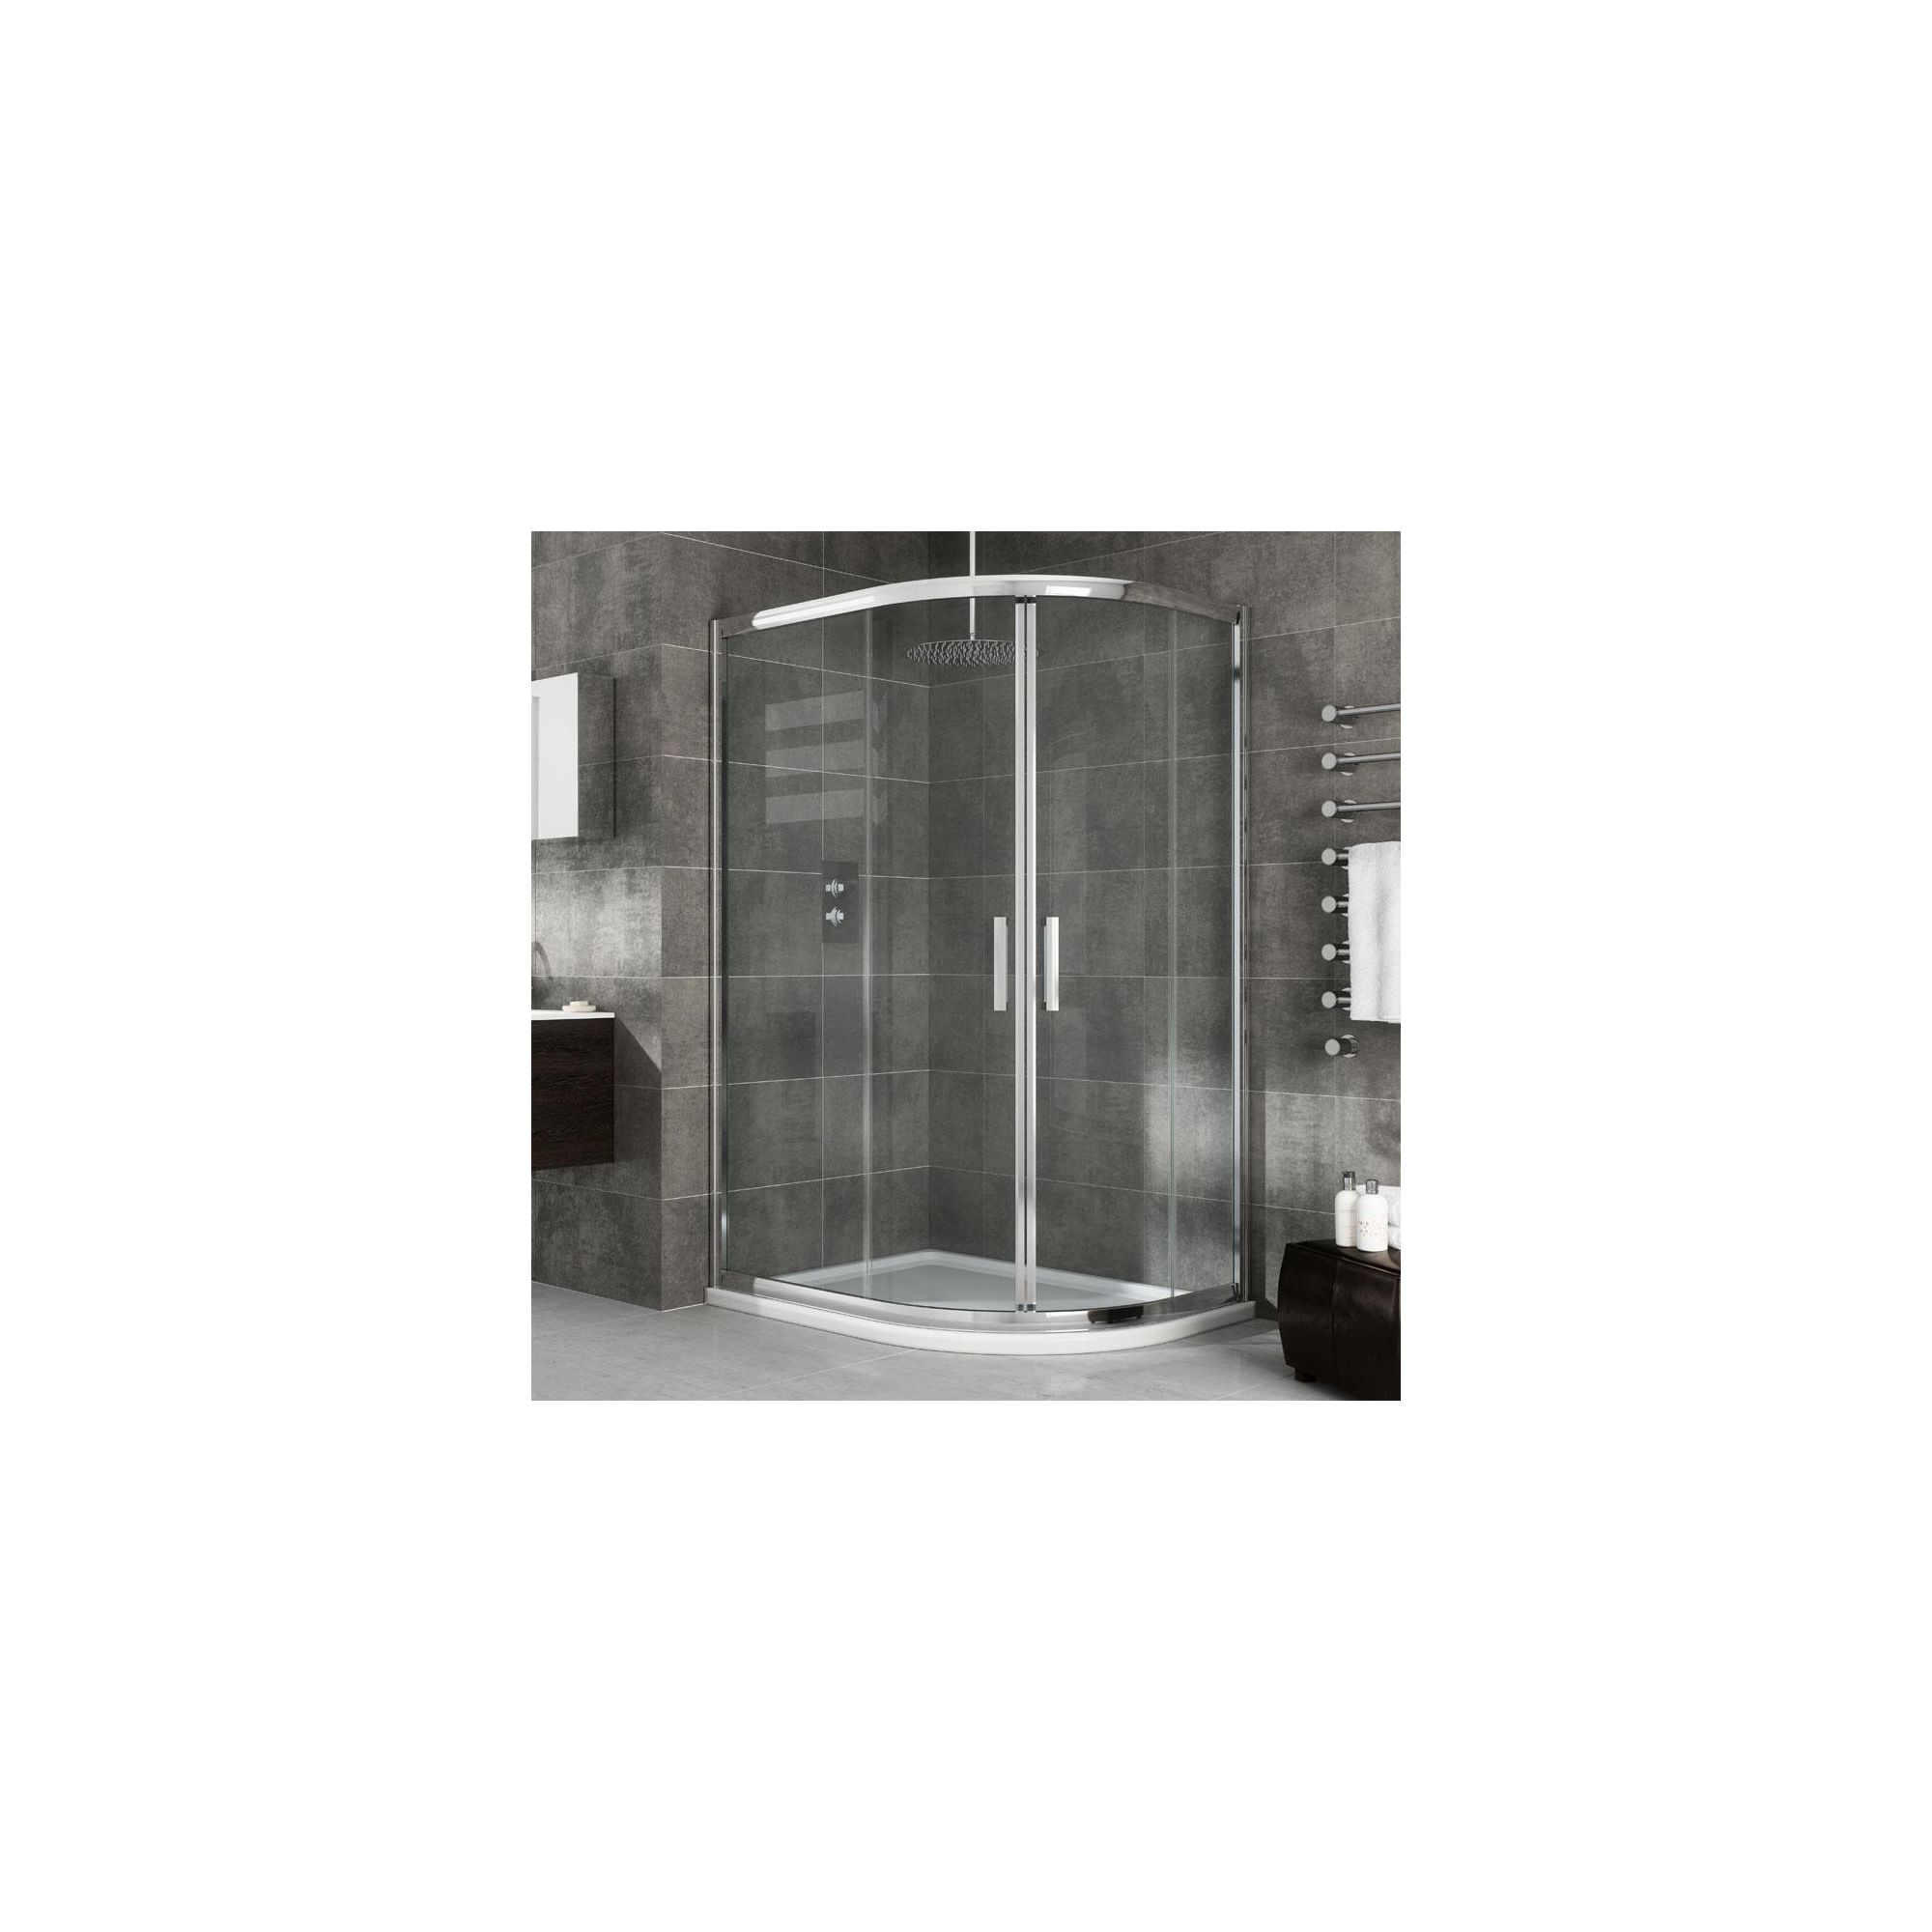 Elemis Eternity Two-Door Offset Quadrant Shower Door, 900mm x 800mm, 8mm Glass at Tesco Direct